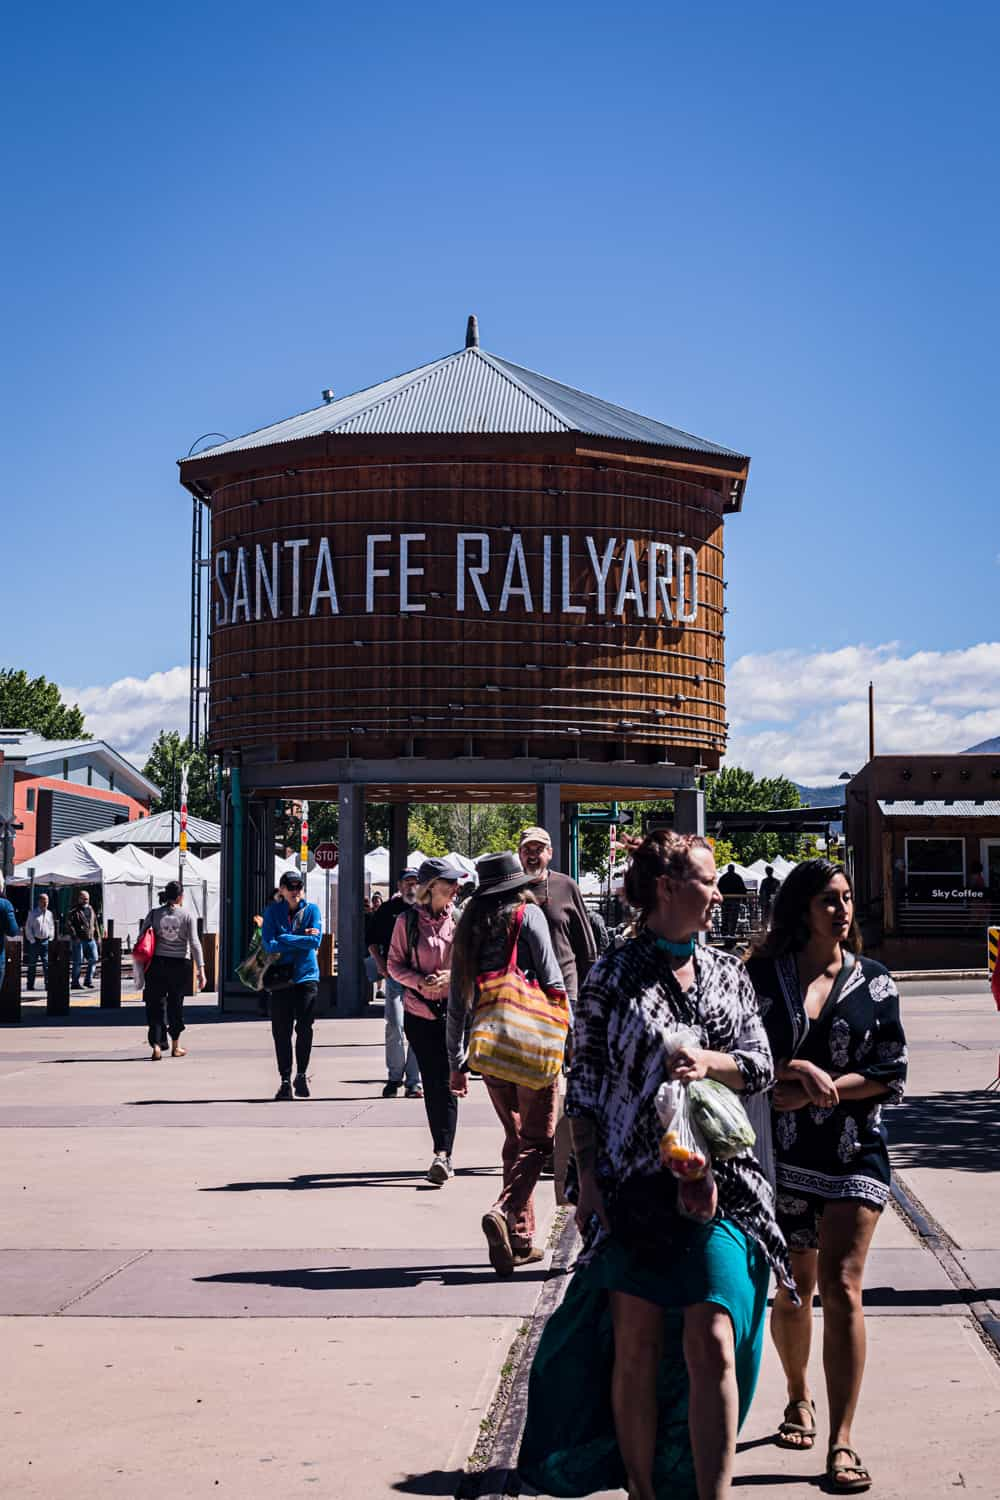 Santa Fe Railyard, filled with people at the Saturday Santa Fe Farmers Market.